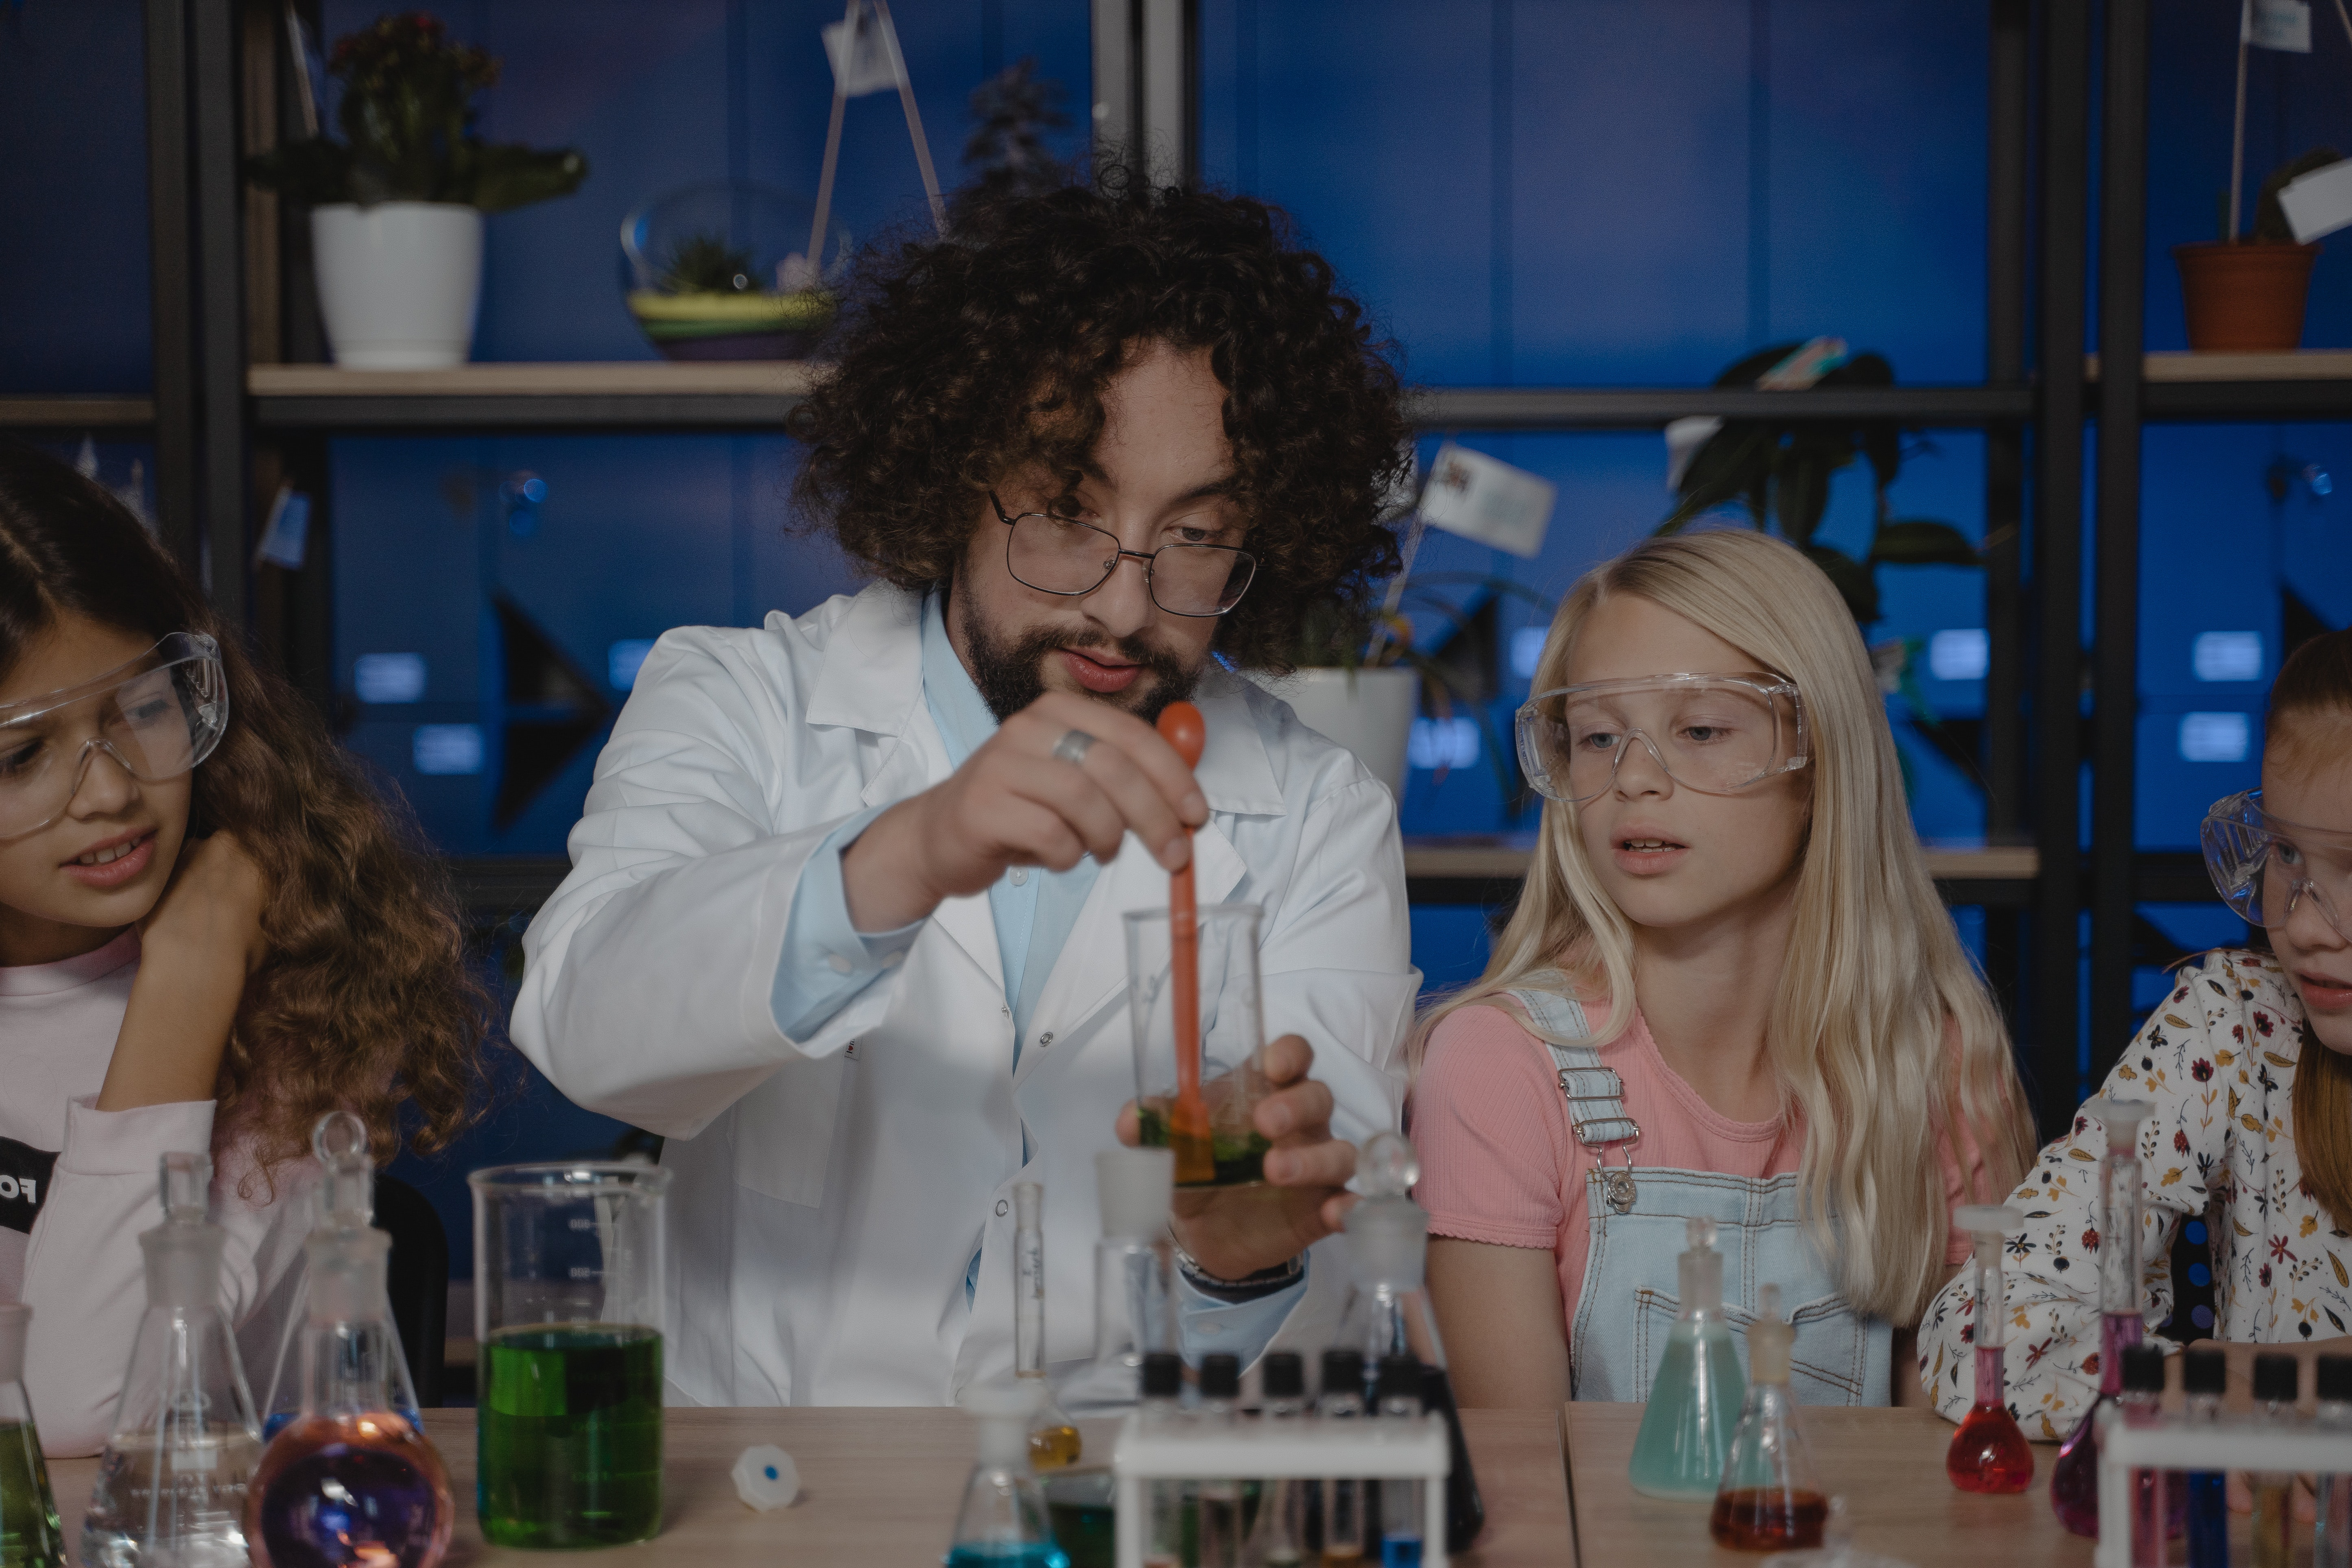 young students participate in a science experiment guided by a male teacher